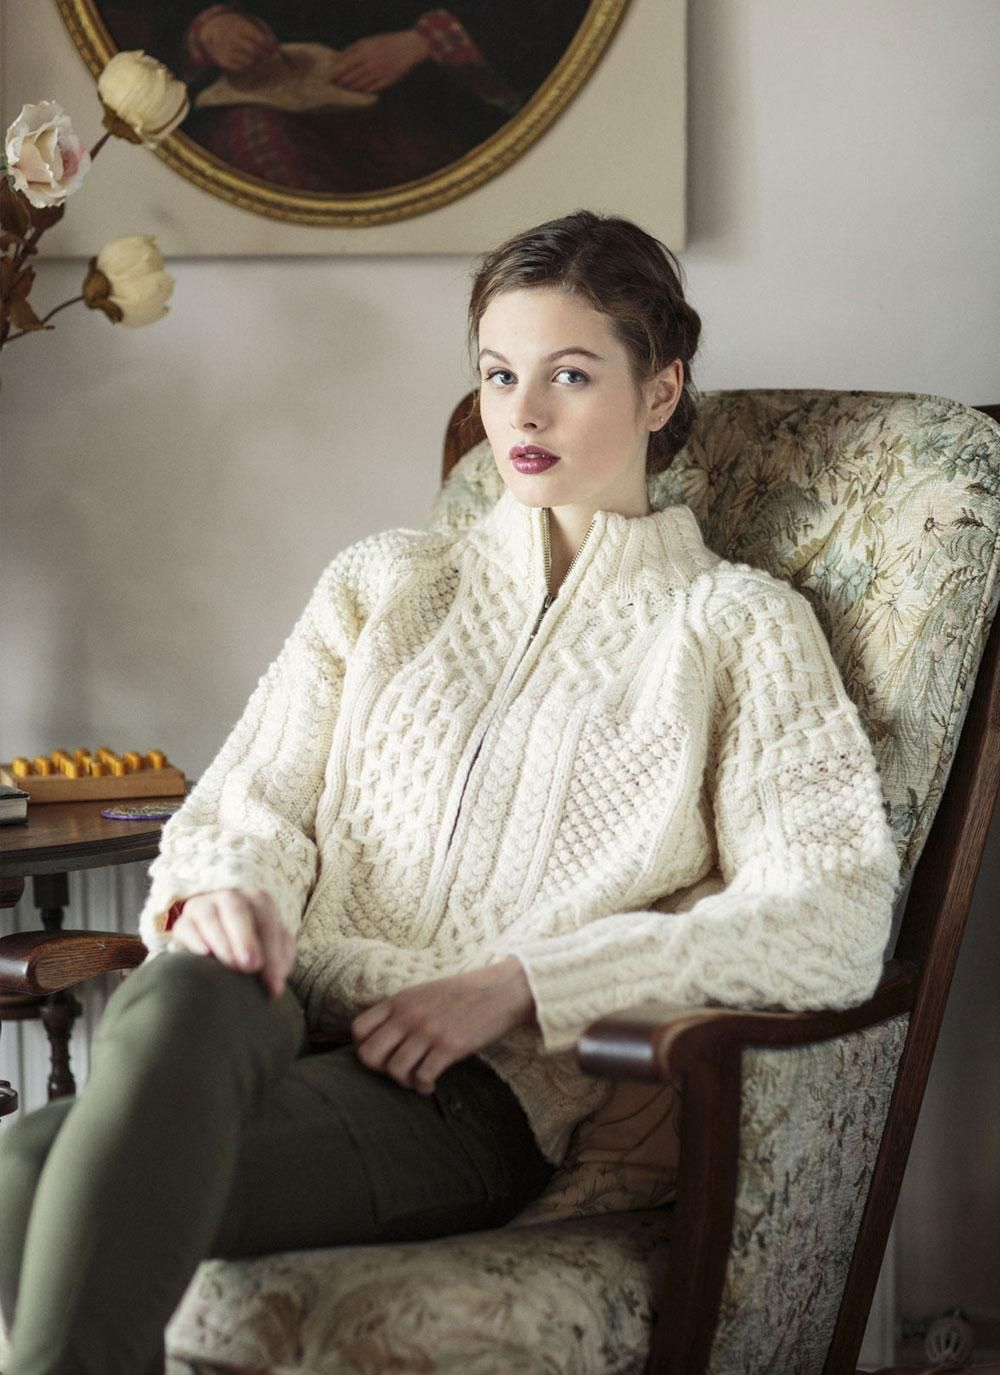 4a5eaae4d97a97 Aran Zip Cardigan  Our full-zip Aran Sweater has been handknit with 100%  merino wool. It has two front pockets and features an intricate blend of ...